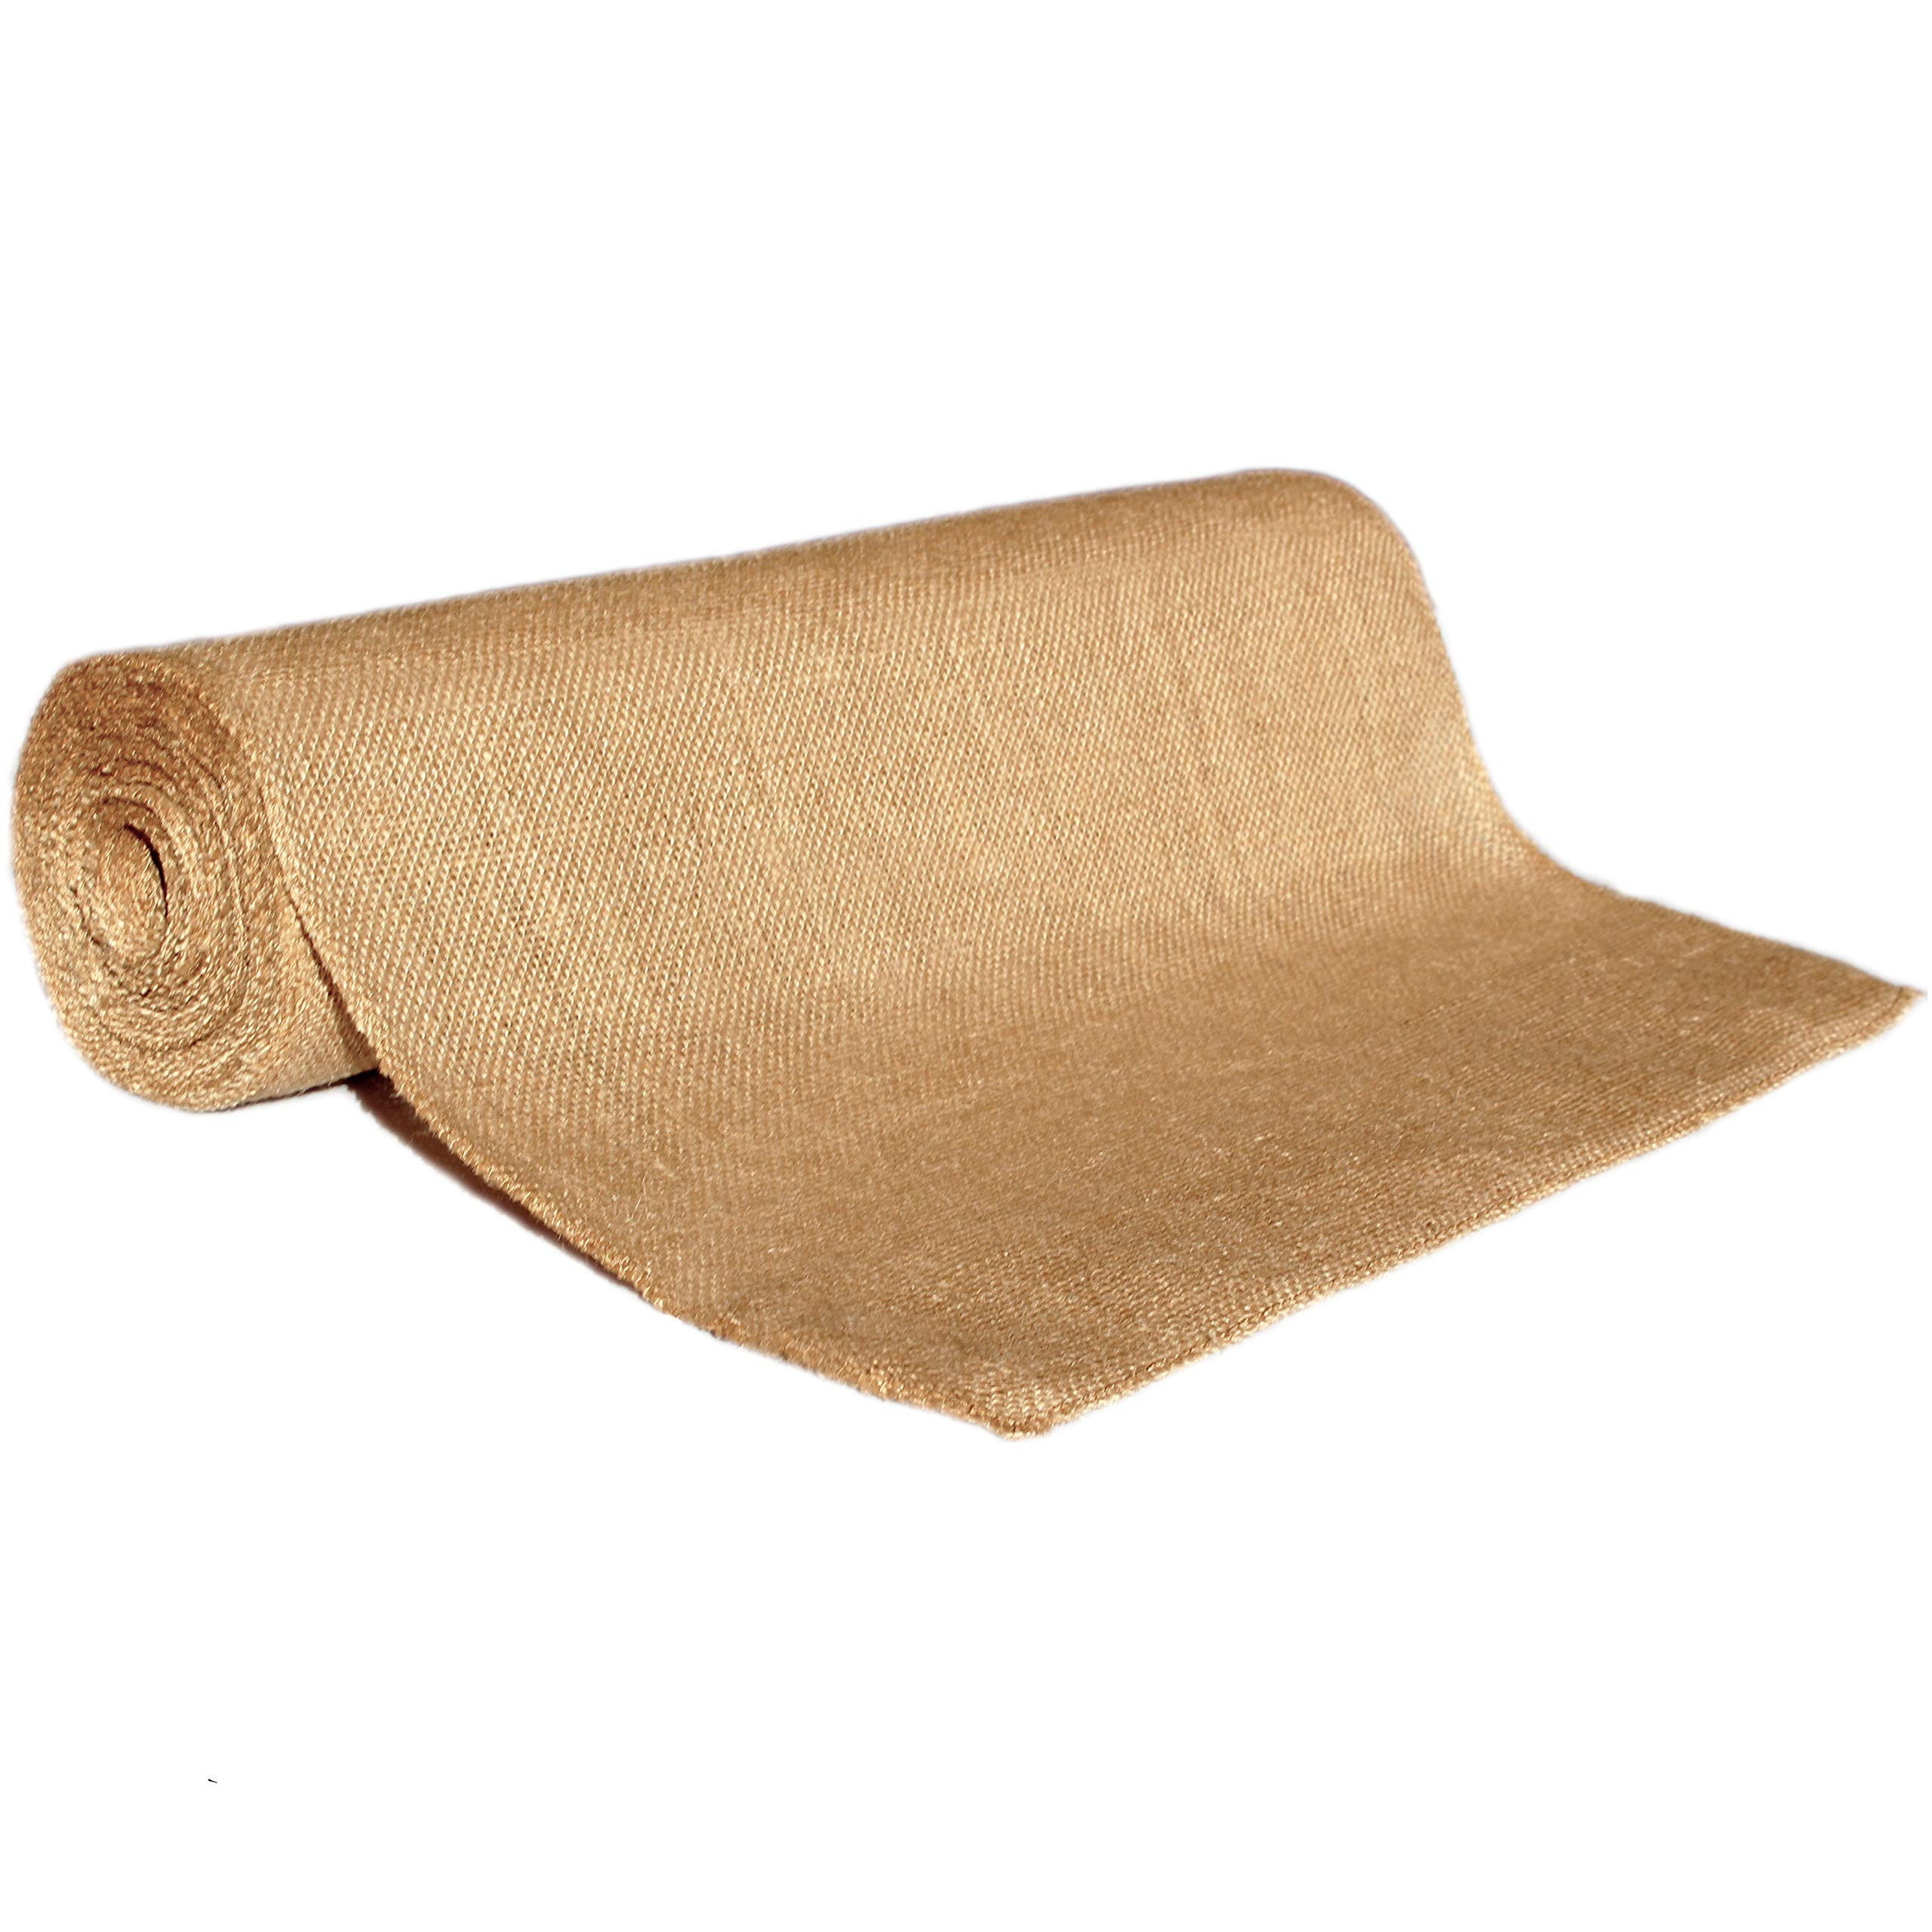 RichCraft Wide 18'' Burlap Table Runner Roll, NO-FRAY NO-Mess ~ 18'' Wide x 10 Yards Long Table Runner Fabric w/Finished Edges. Perfect for Weddings, Placemat, Crafts. Decorate Without The Mess!